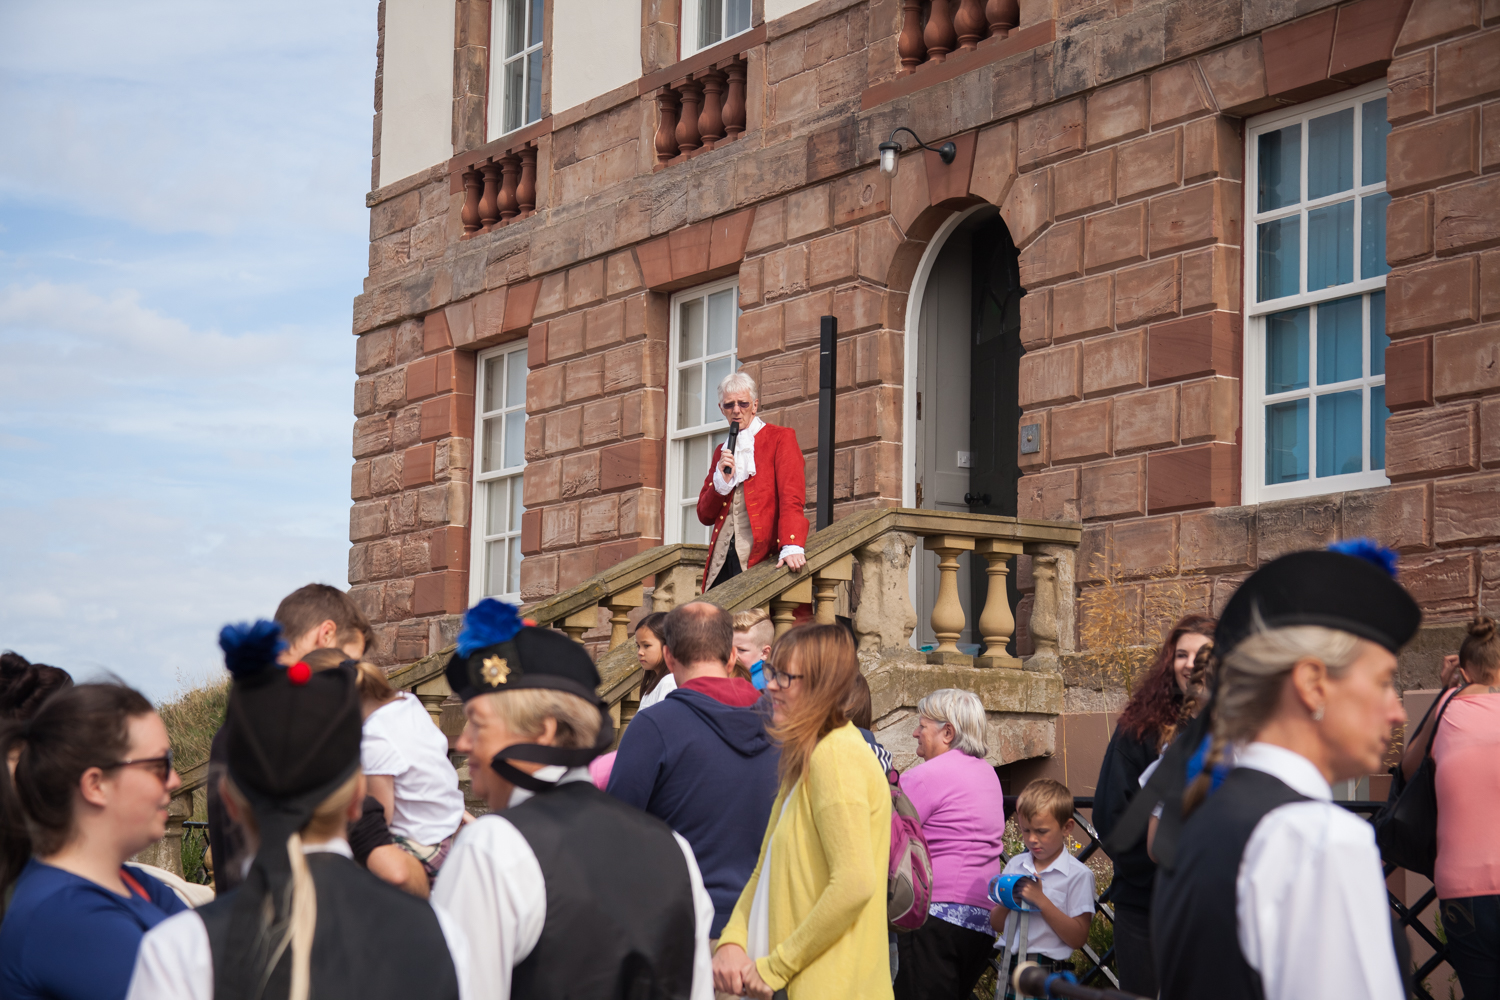 PICTORIAL_BERWICK_eyemouth-gunsgreen-extravaganza-photography-entertainment-party-event-photographer-harbour-gary-dunn-dancers-stilts-performances-speeches-day-out-summer-4530.jpg